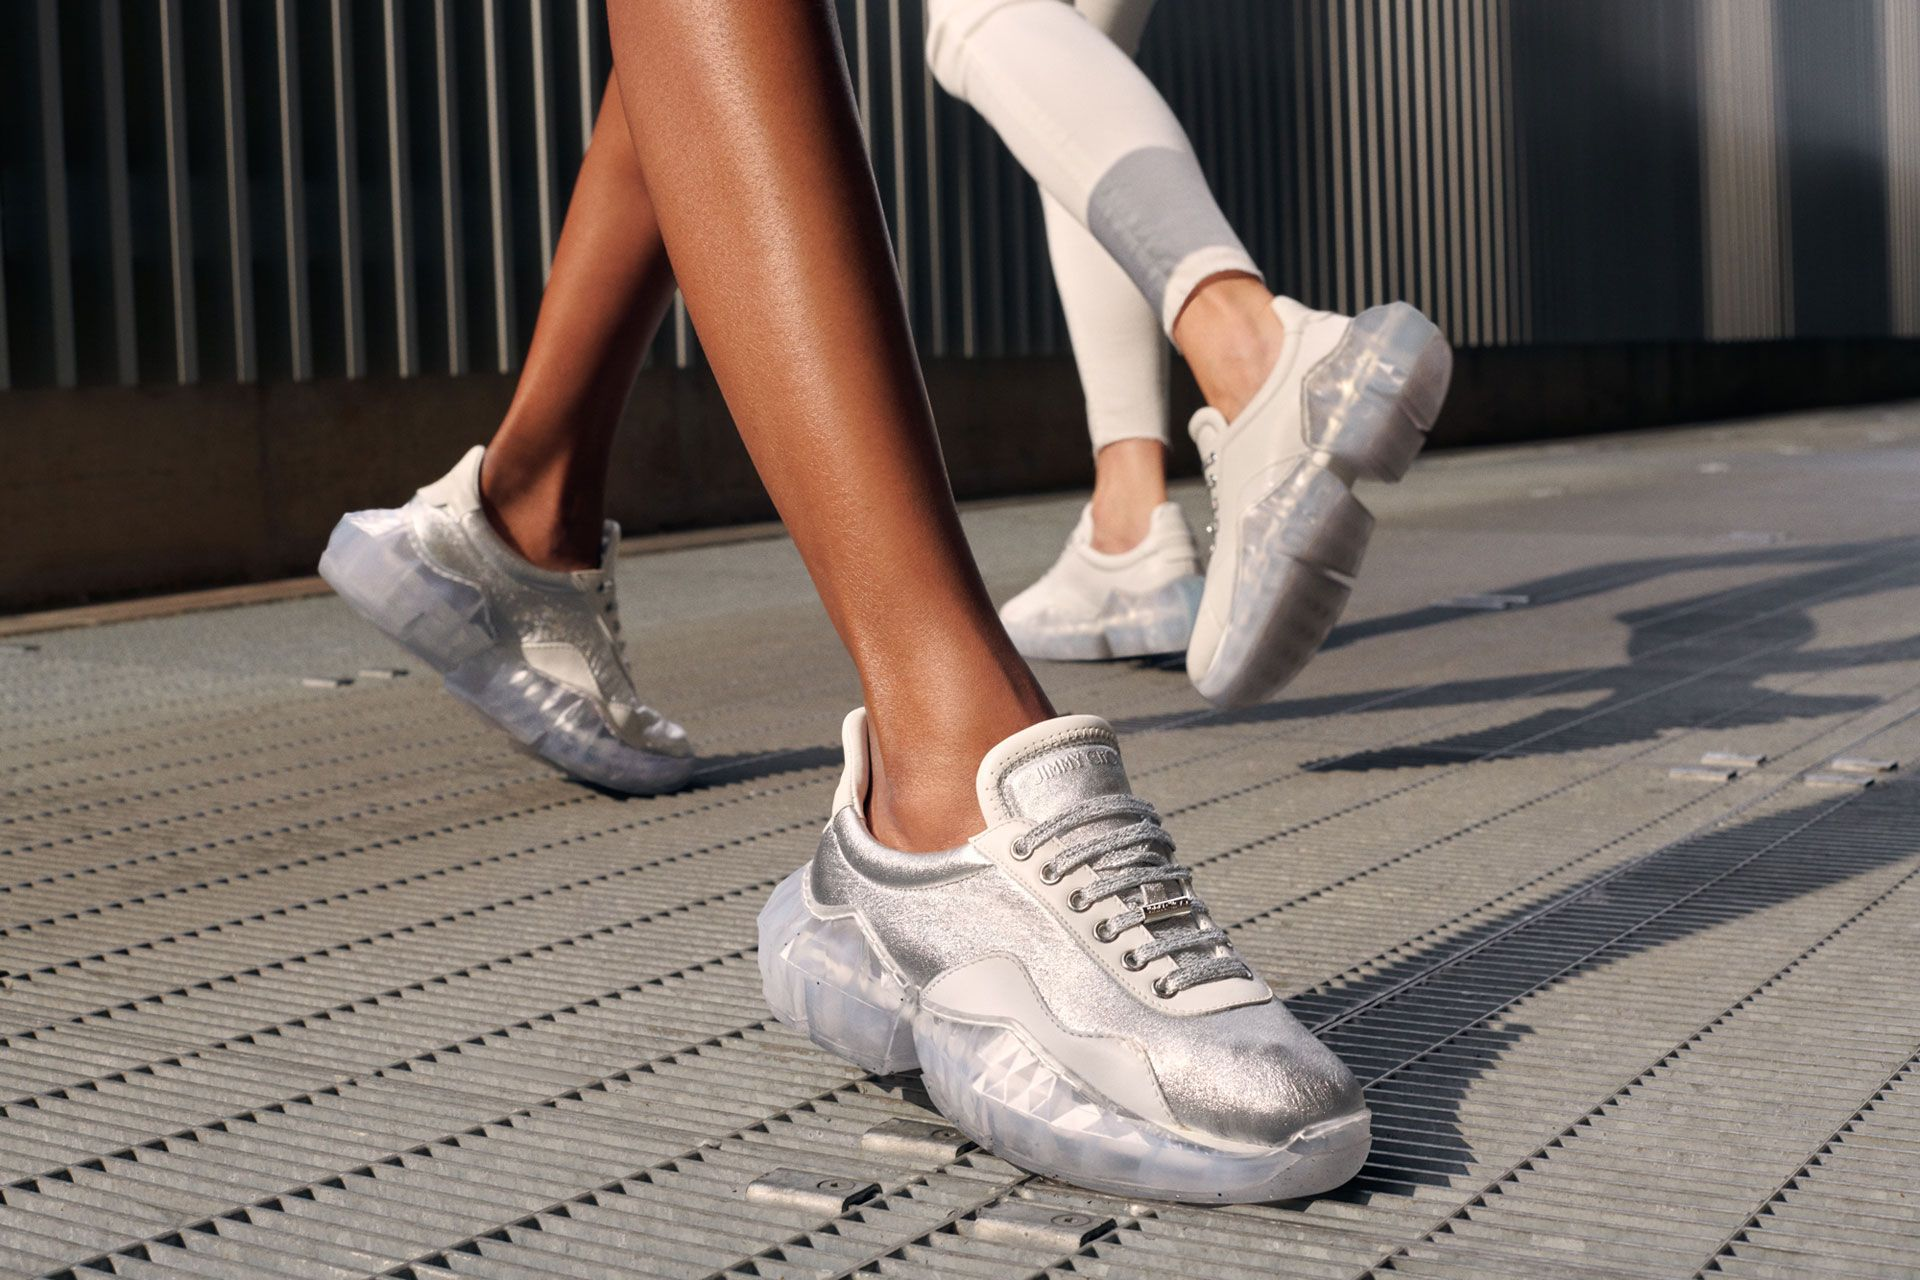 Jimmy Choo Launches The Diamond Sneaker